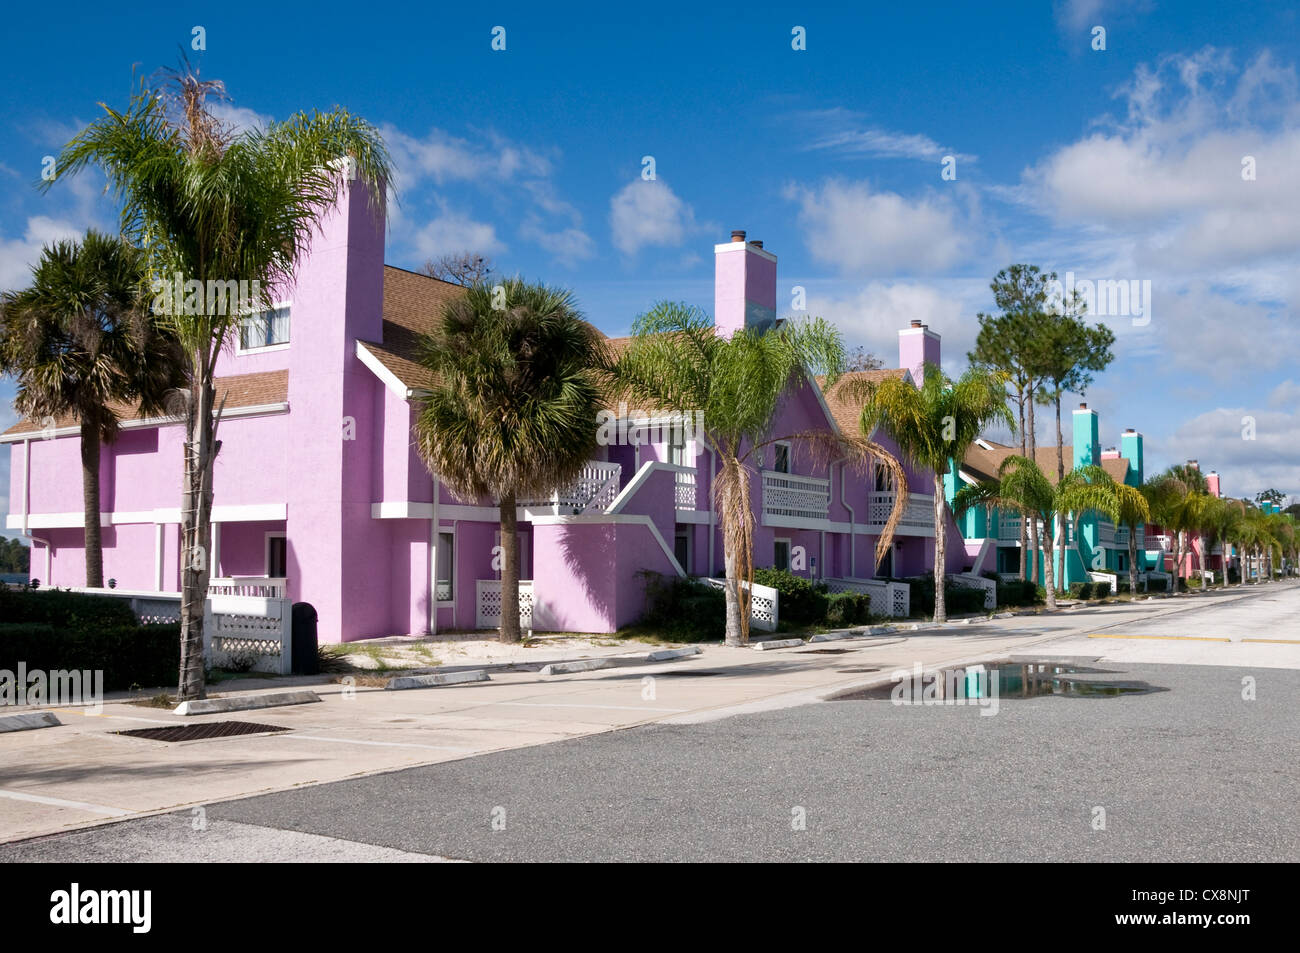 Row of Brightly colored Abandon condominiums due to recession - Stock Image